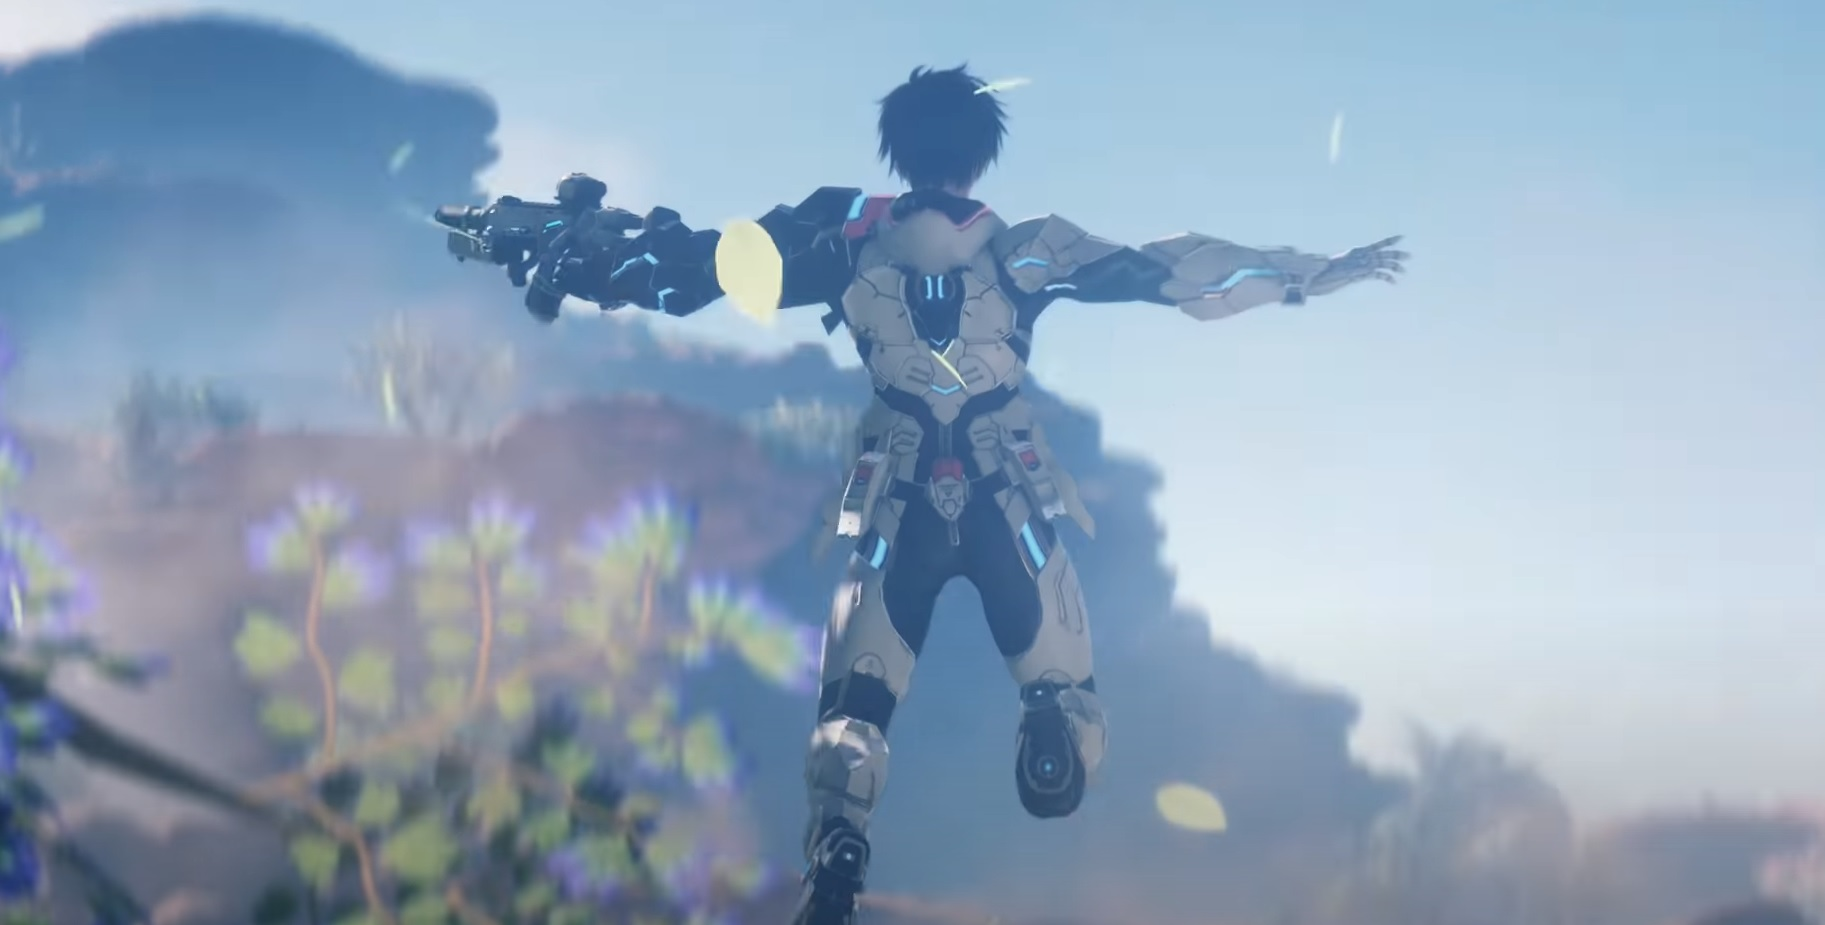 Yes, we'll learn more about Phantasy Star Online 2: New Genesis very soon screenshot